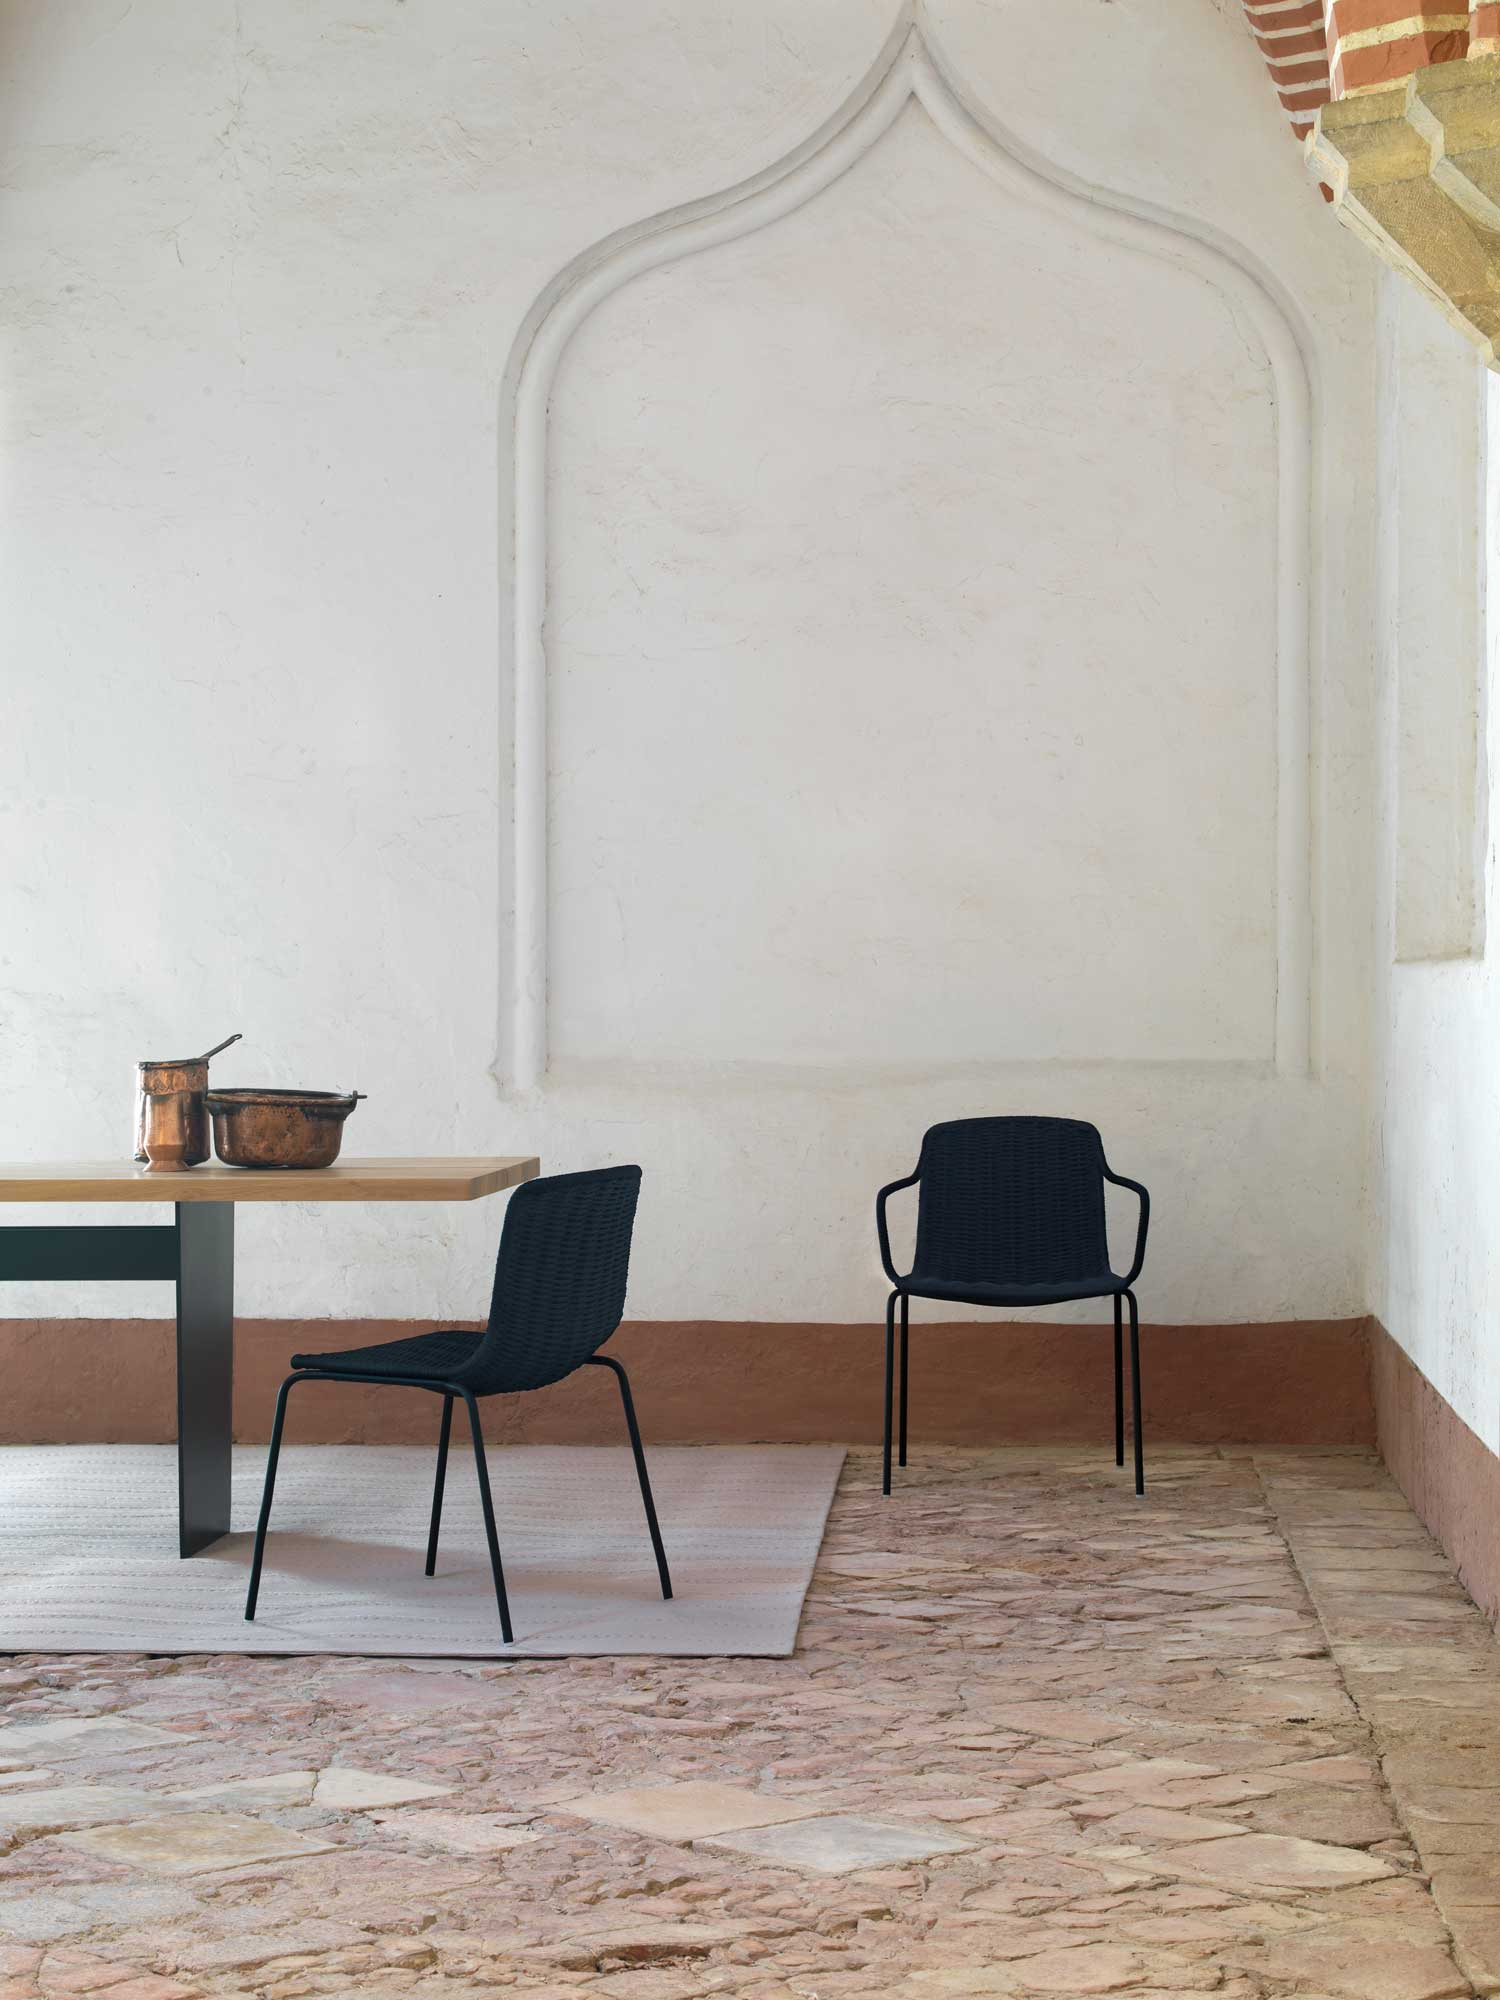 Lapala by Lievore Altherr Molina at Maison & Objet | Yellowtrace